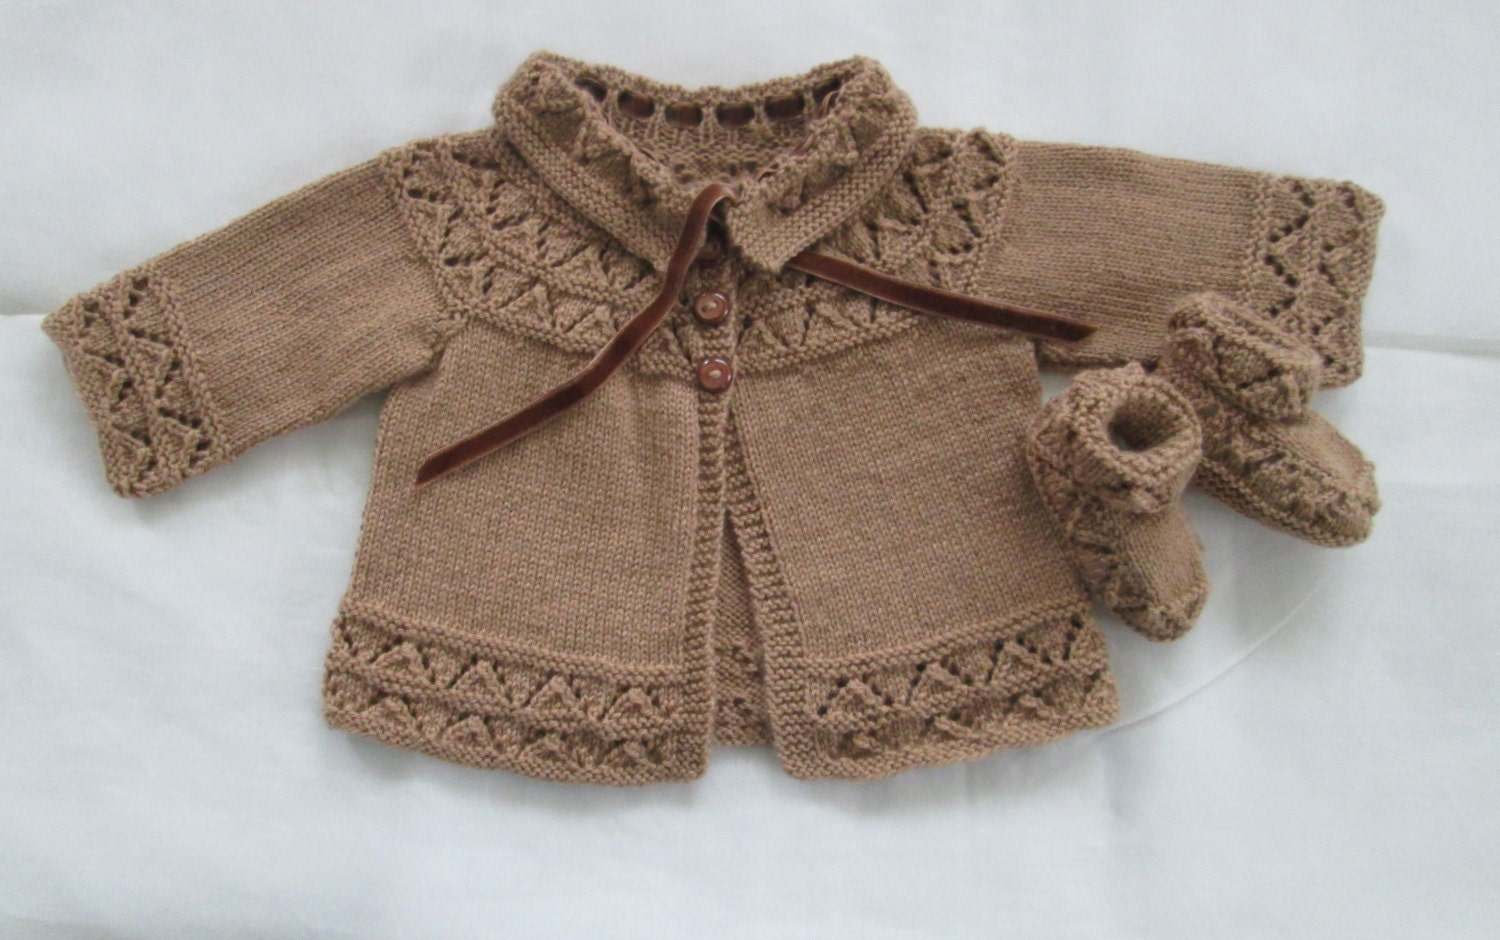 Knitting Patterns And Wool Sets : Baby Sweater Booties Set Hand Knit Cashmere Wool 6M by SwanAvenue